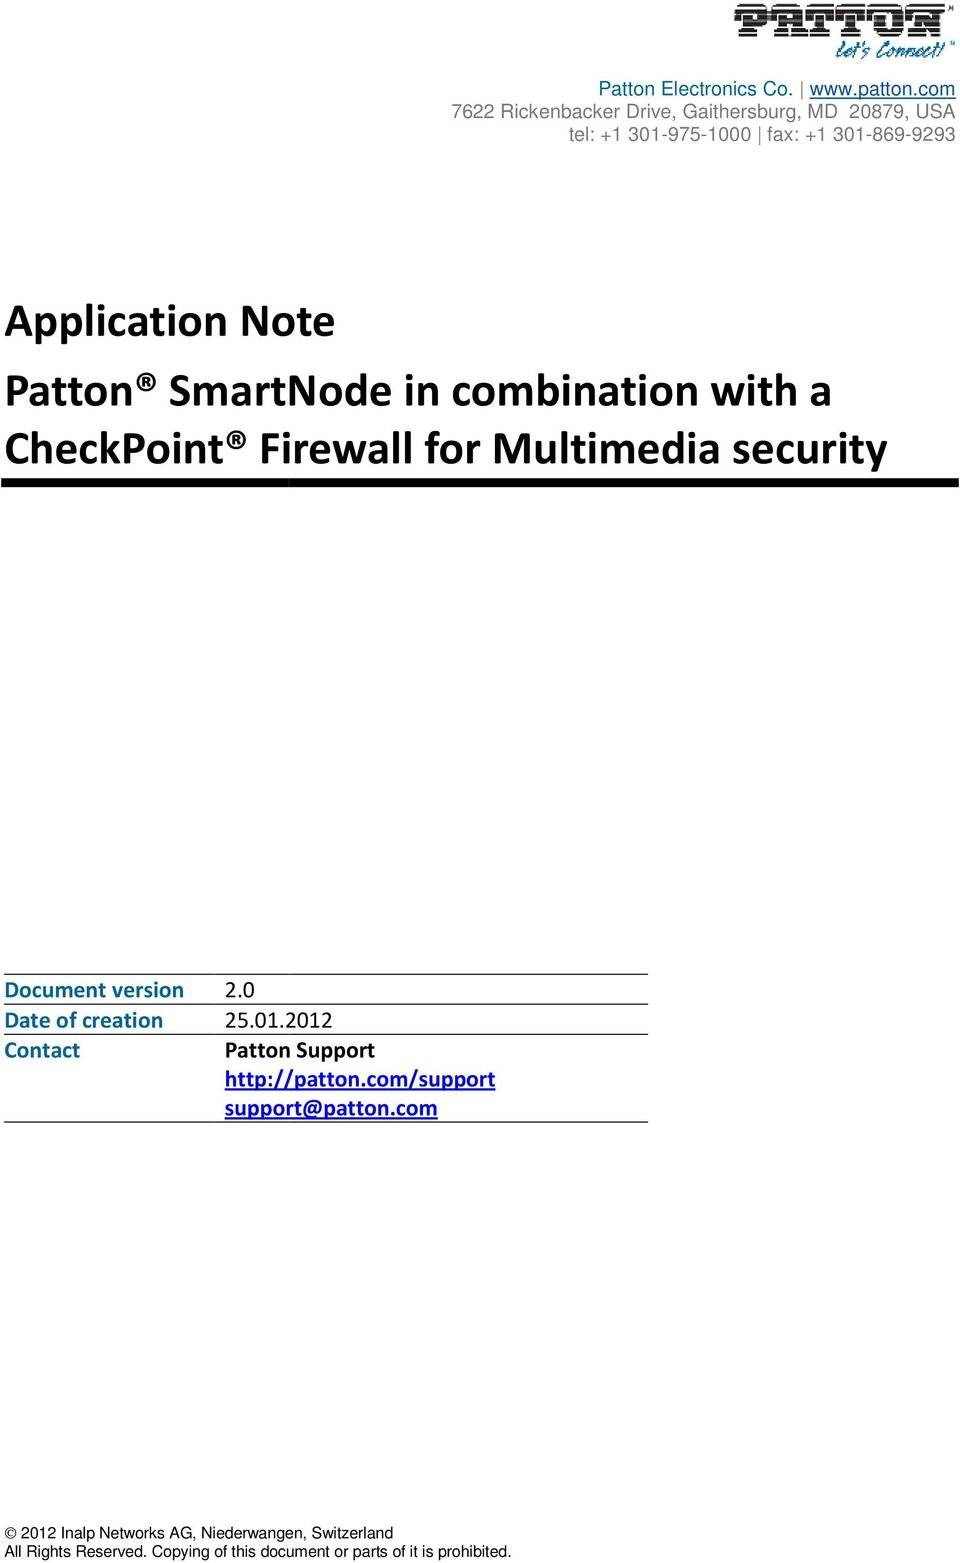 Patton SmartNode in combination with a CheckPoint Firewall for Multimedia security Document version 2.